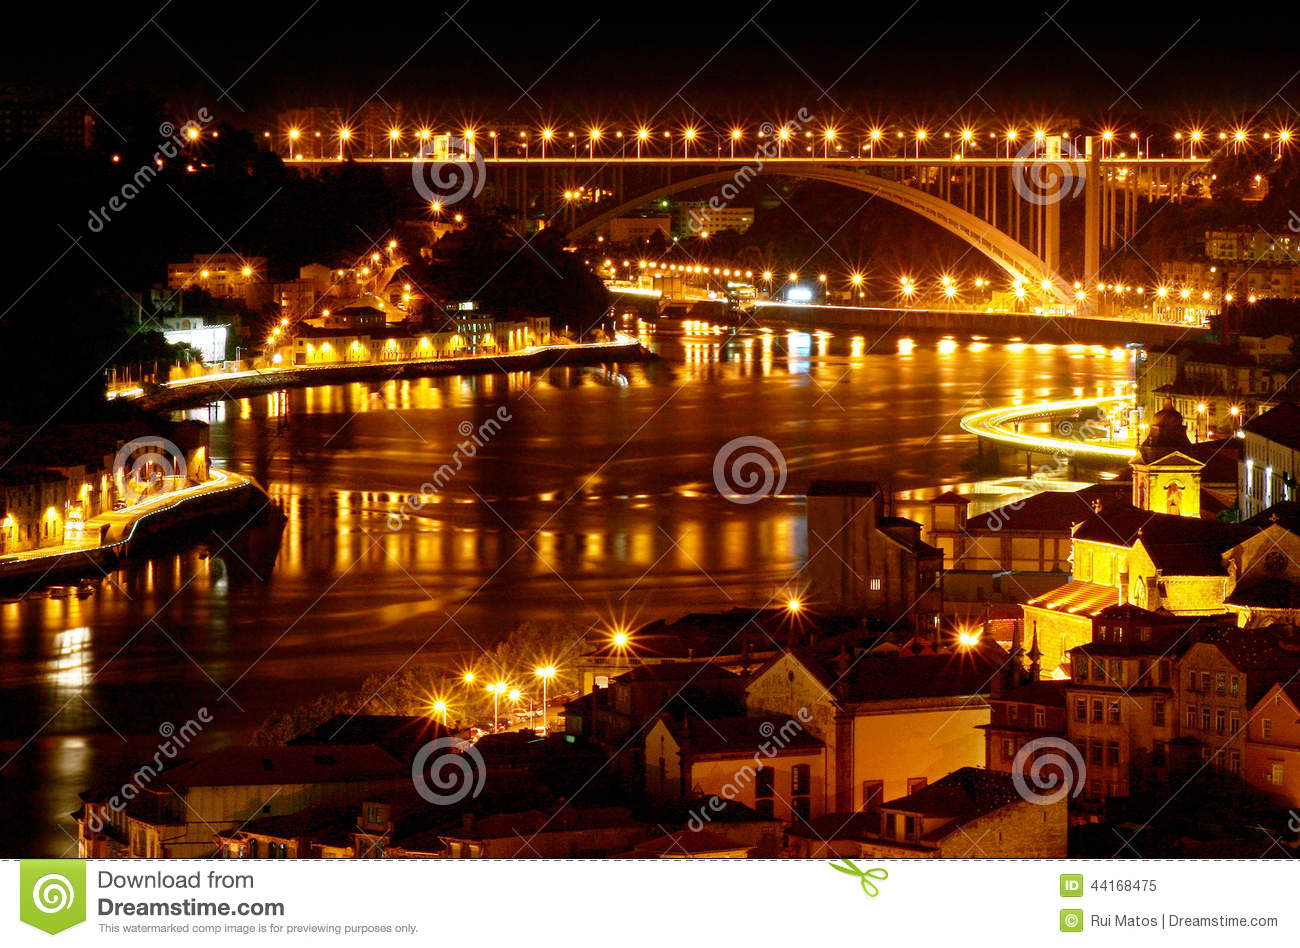 Oporto by night - Portugal